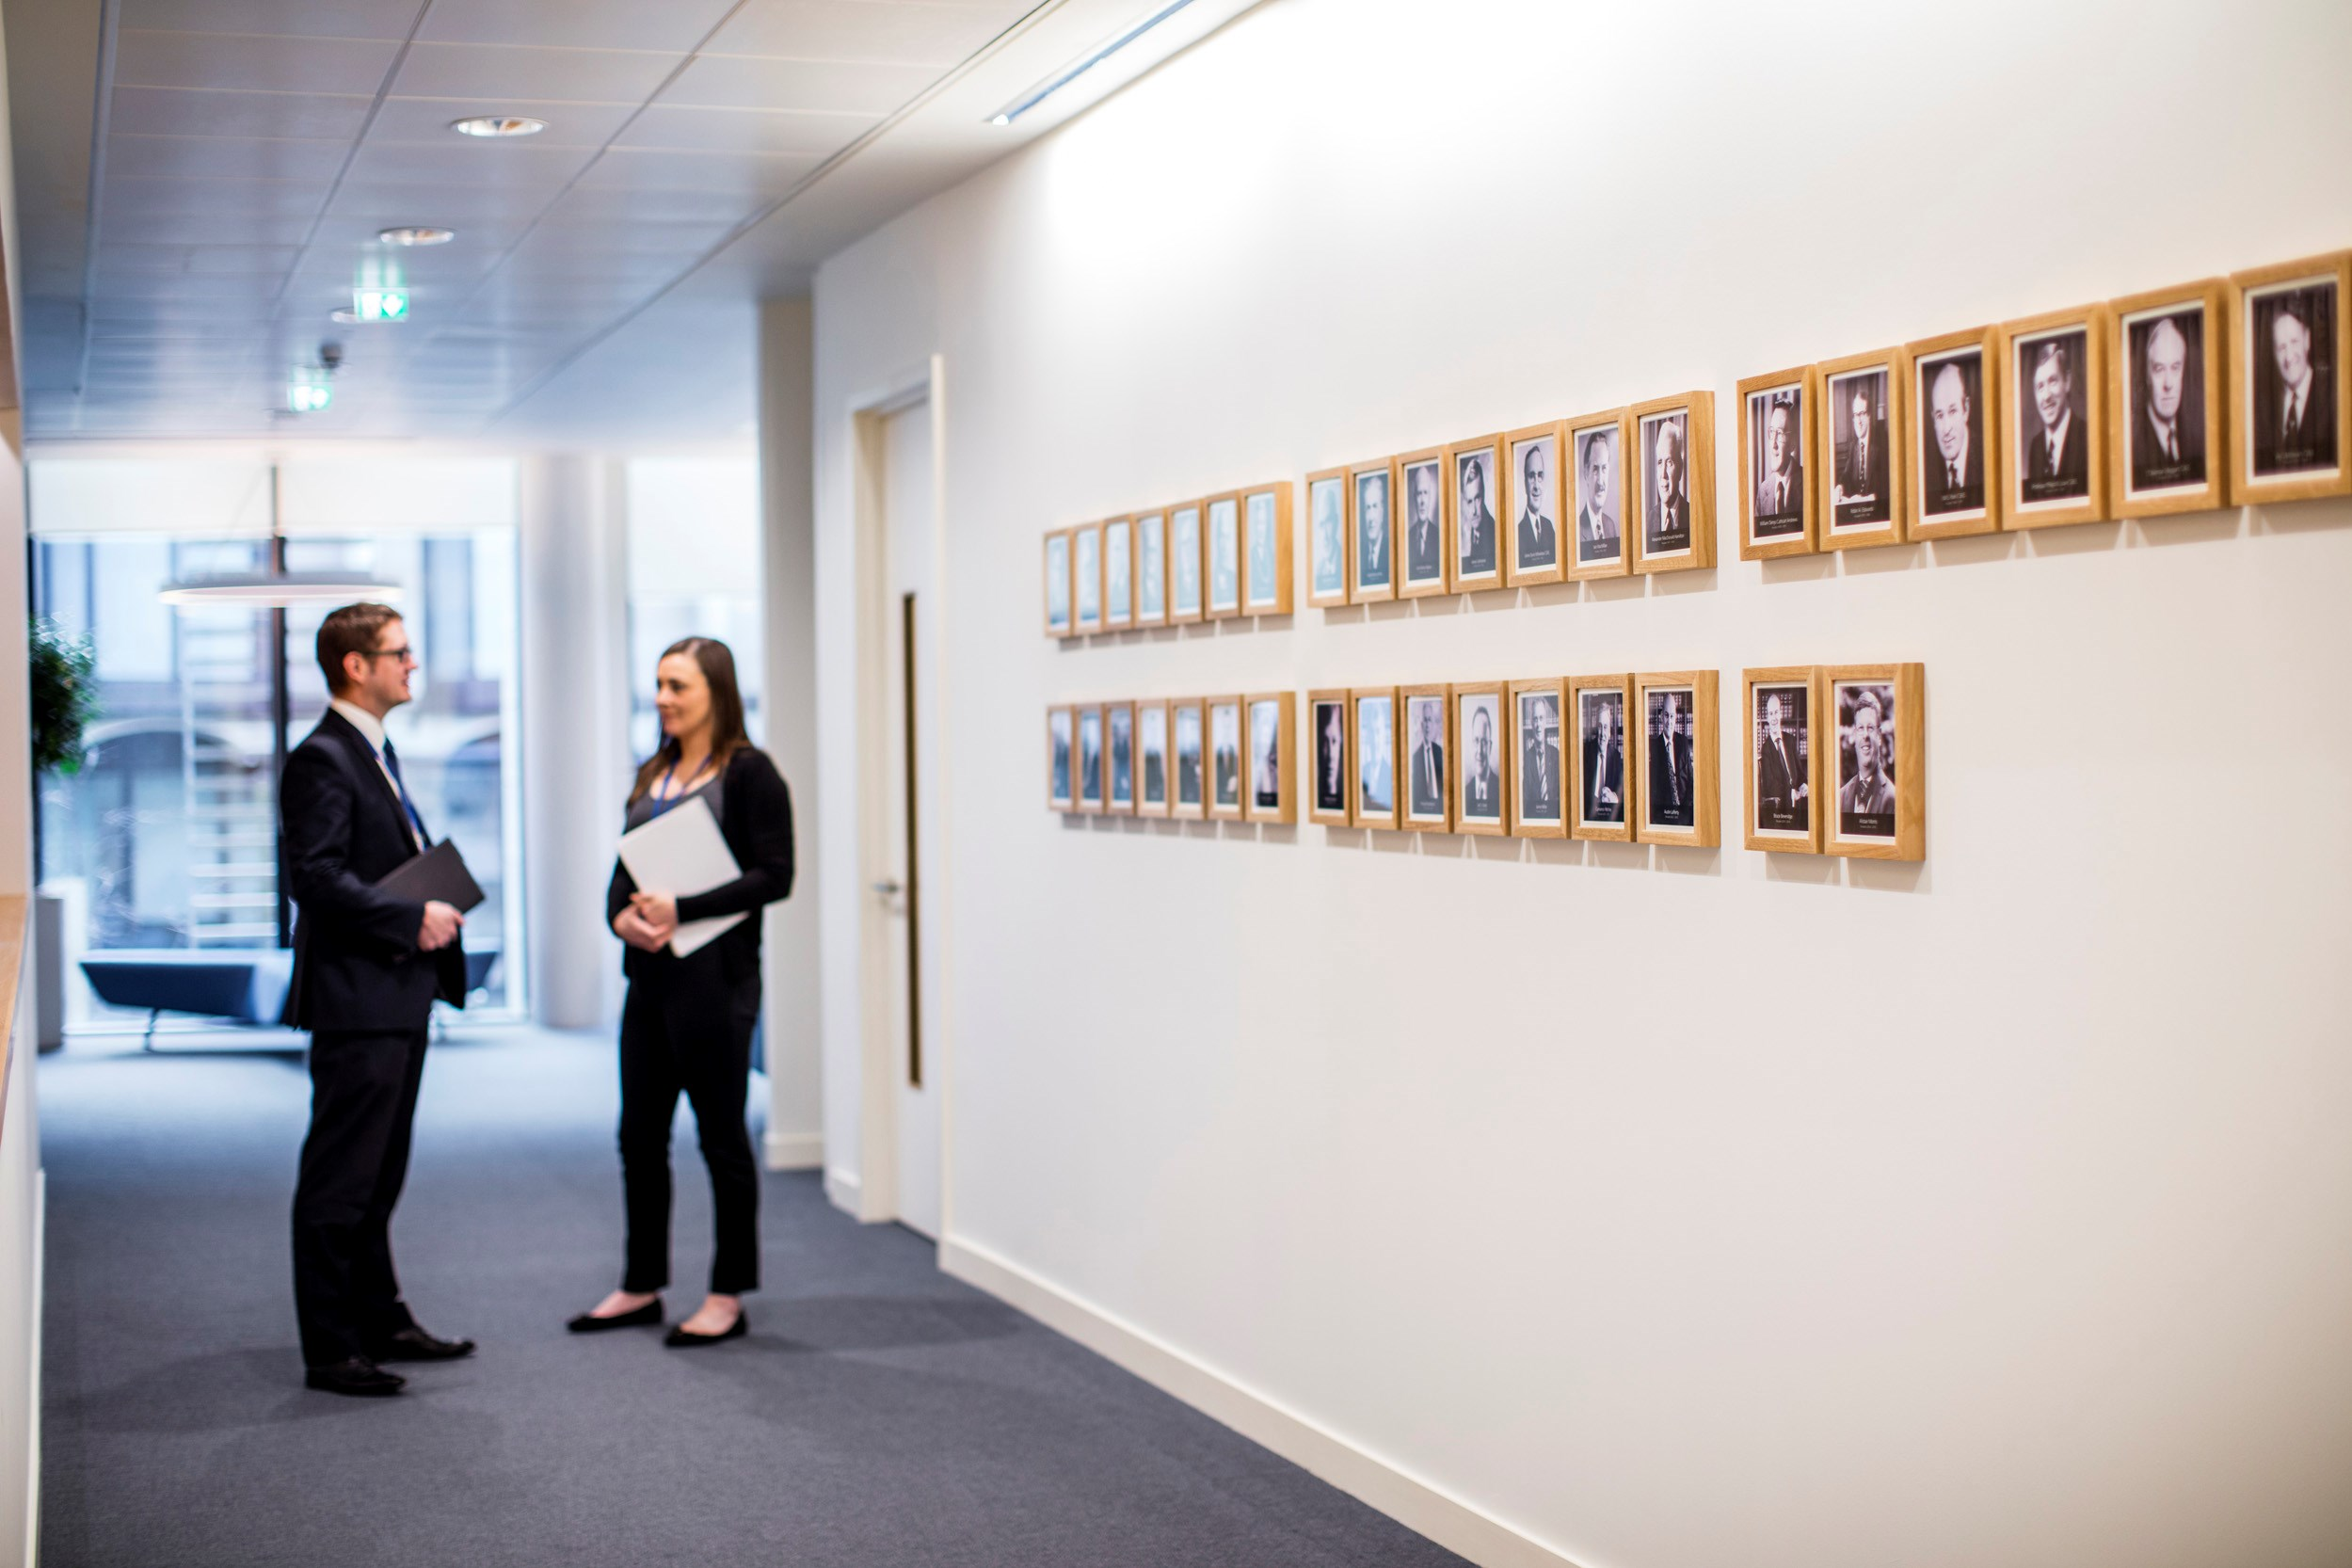 A corridor lined with photographs and two people standing and chatting